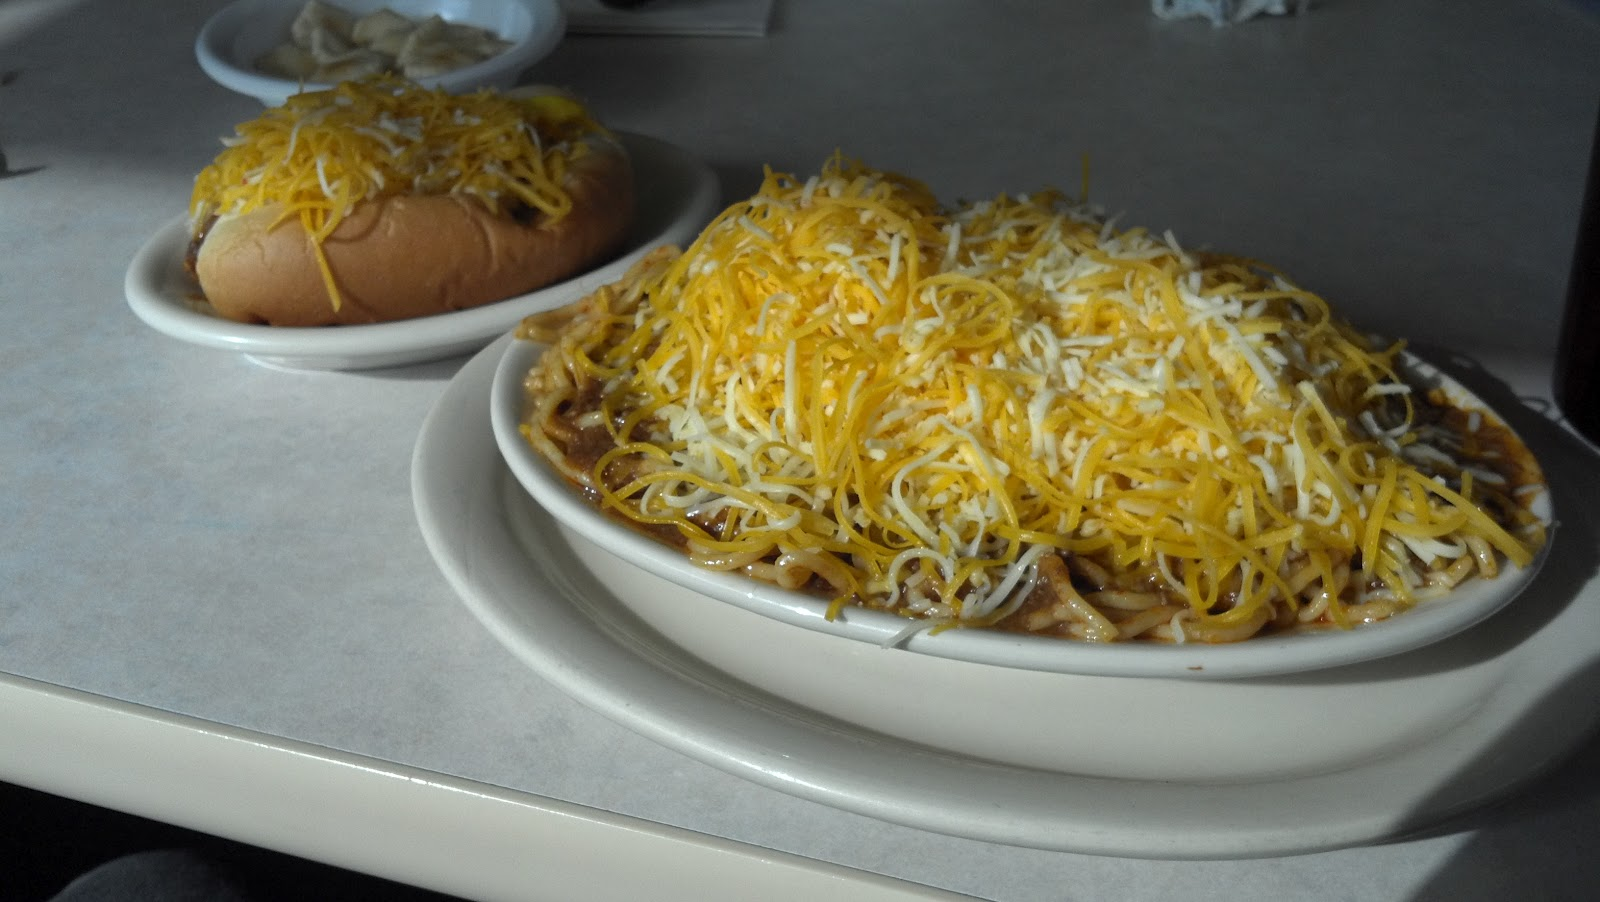 ... nnat i chili skyline chili joe john h and i ate at skyline chili tod